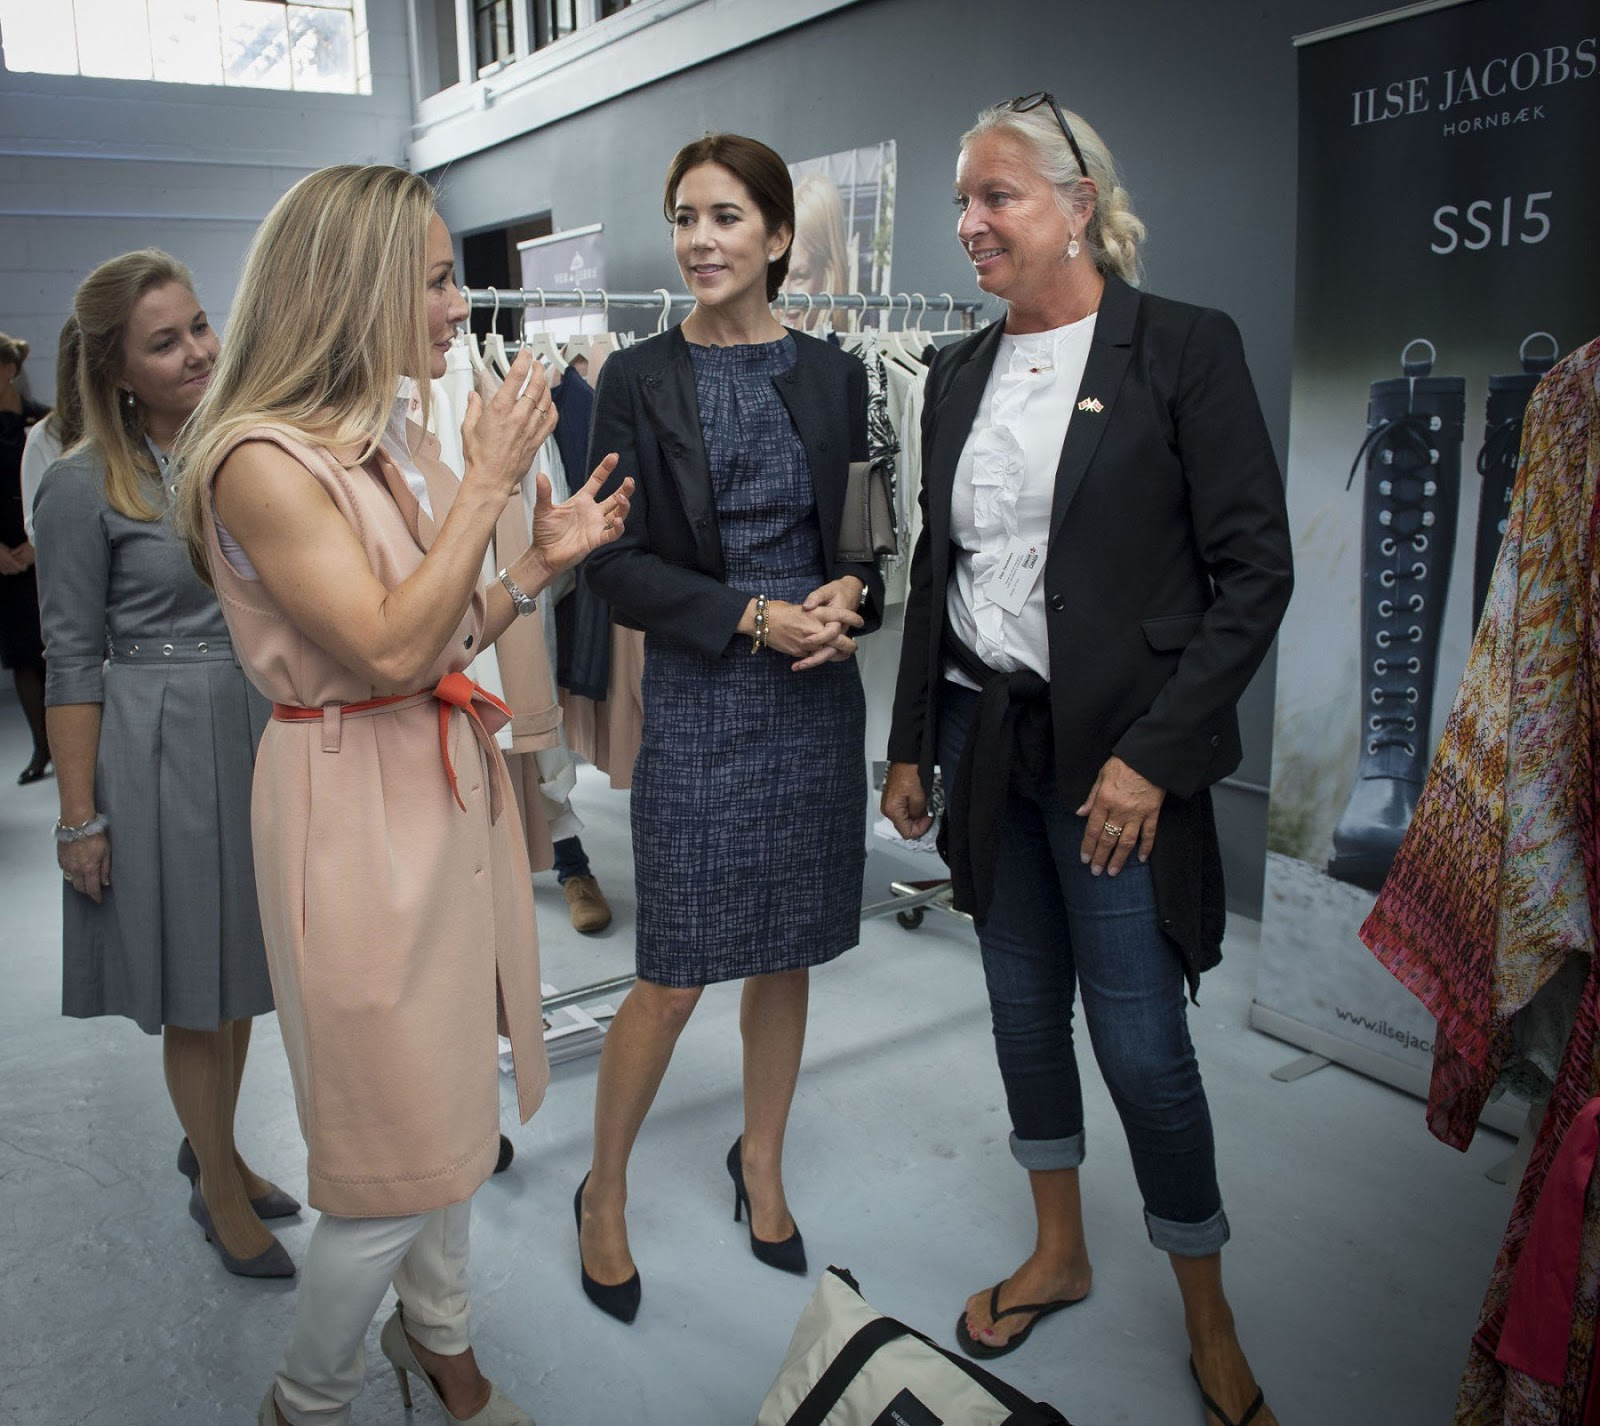 Their royal guest, who went alone to the showroom, shared her favourite designers' enthusiasm as she browsed through the many colourful dresses and shiny jewellery.